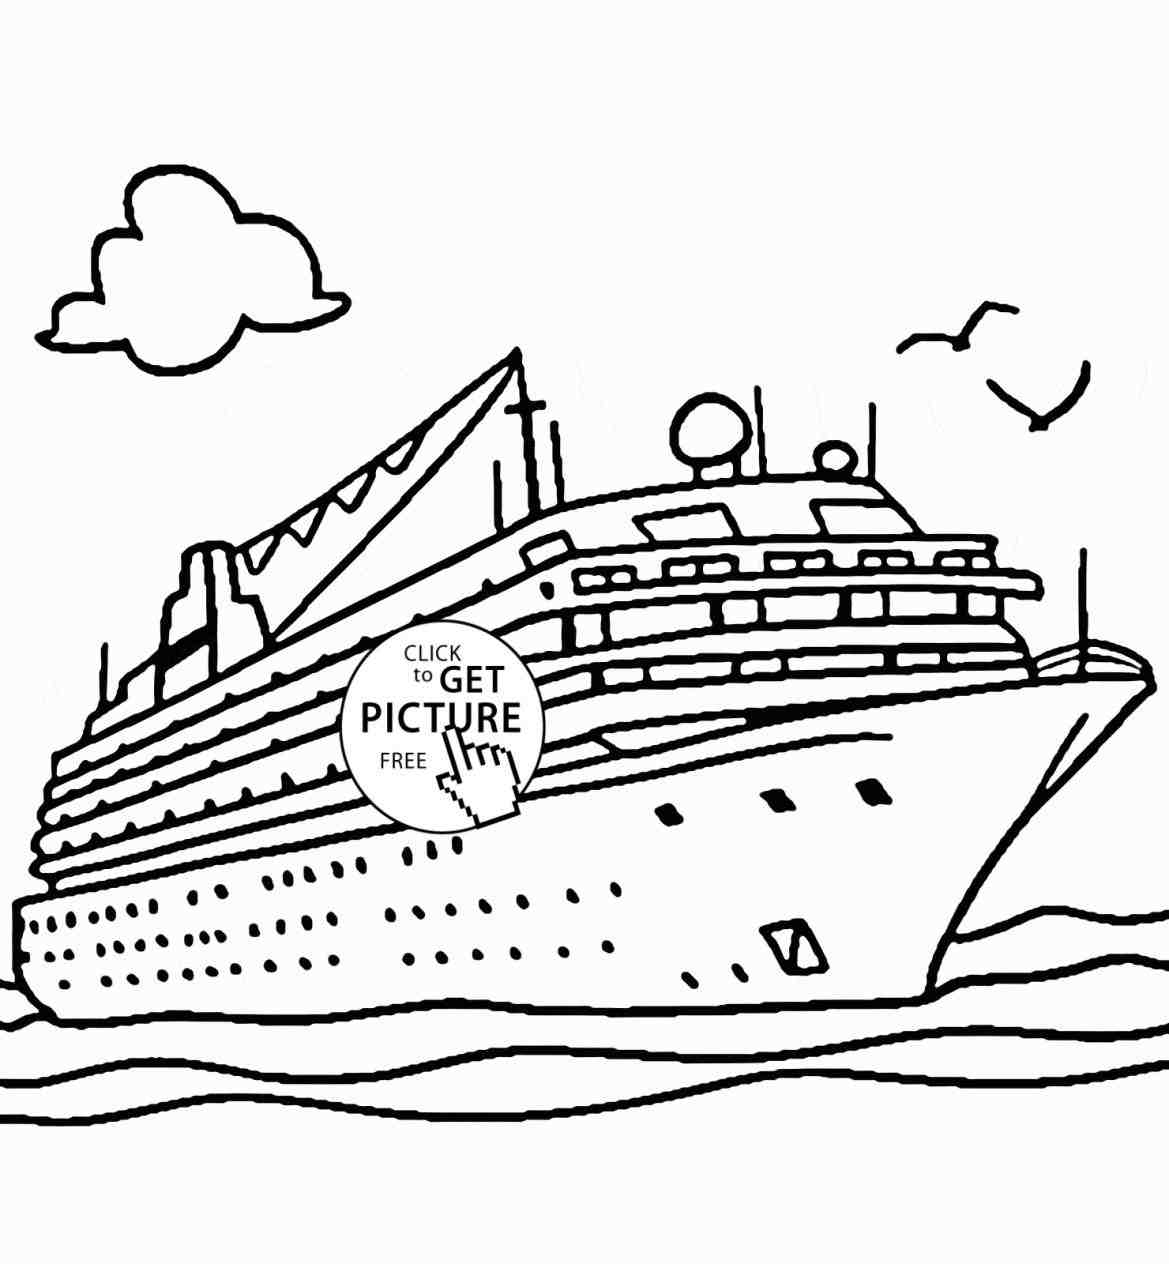 1169x1264 Ship Drawing For Kids Cruise Coloring Page Transportation Clip Art